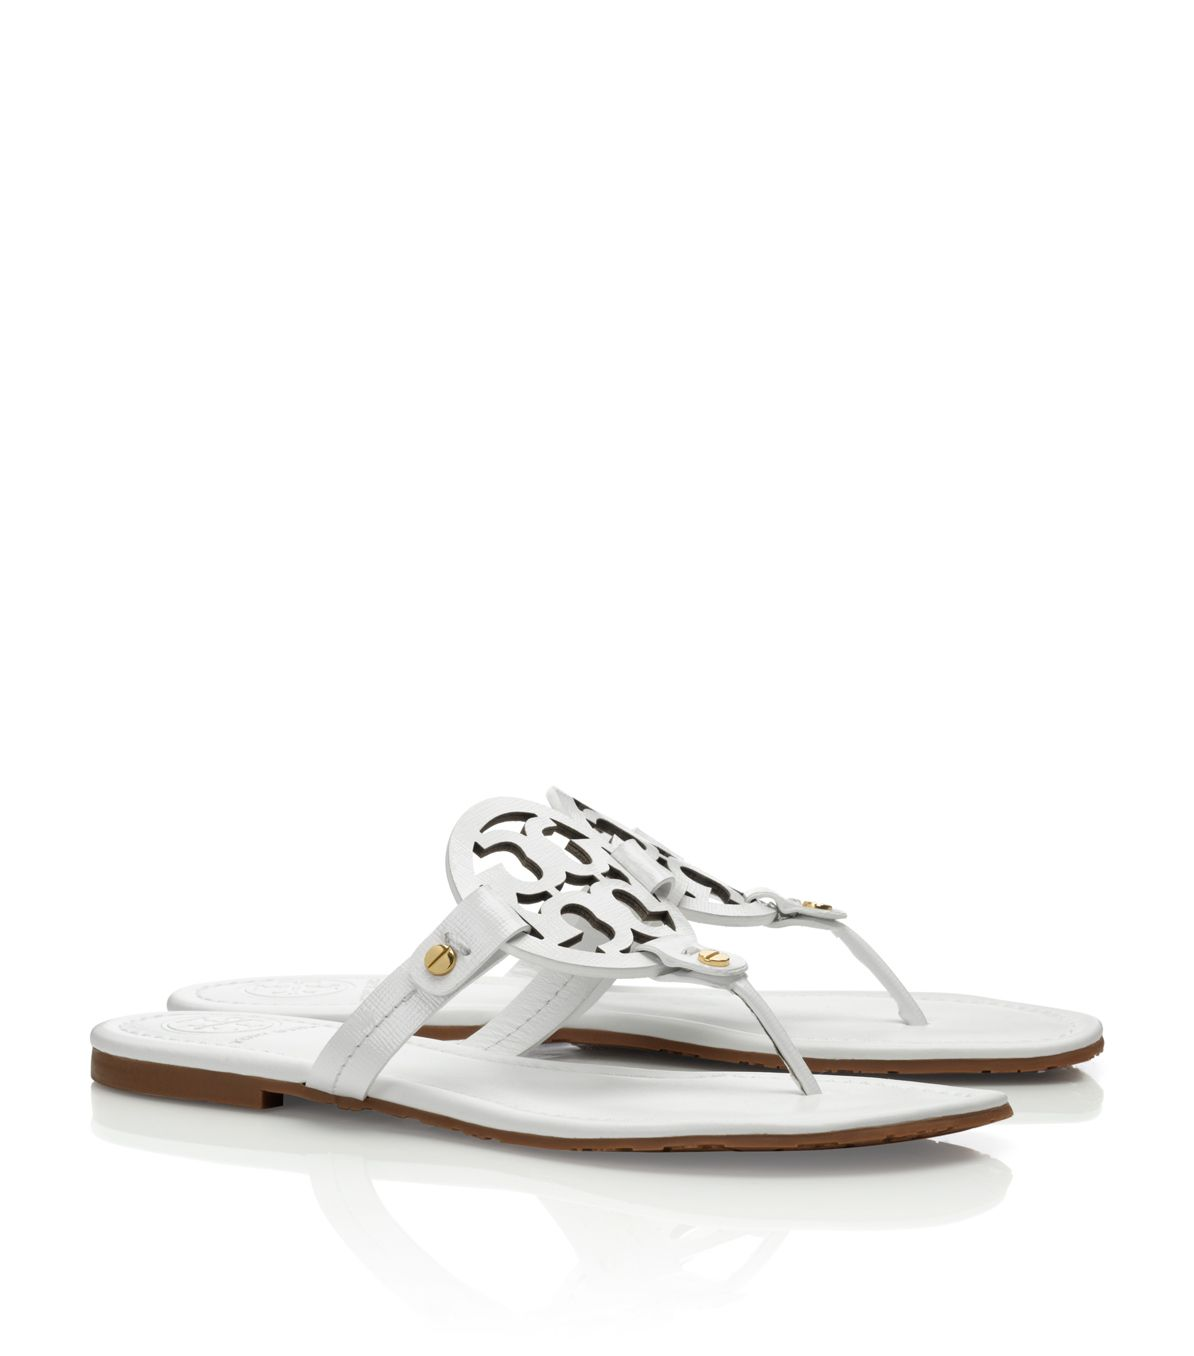 11f468228 Lyst - Tory Burch Patent Leather Miller Sandal in White